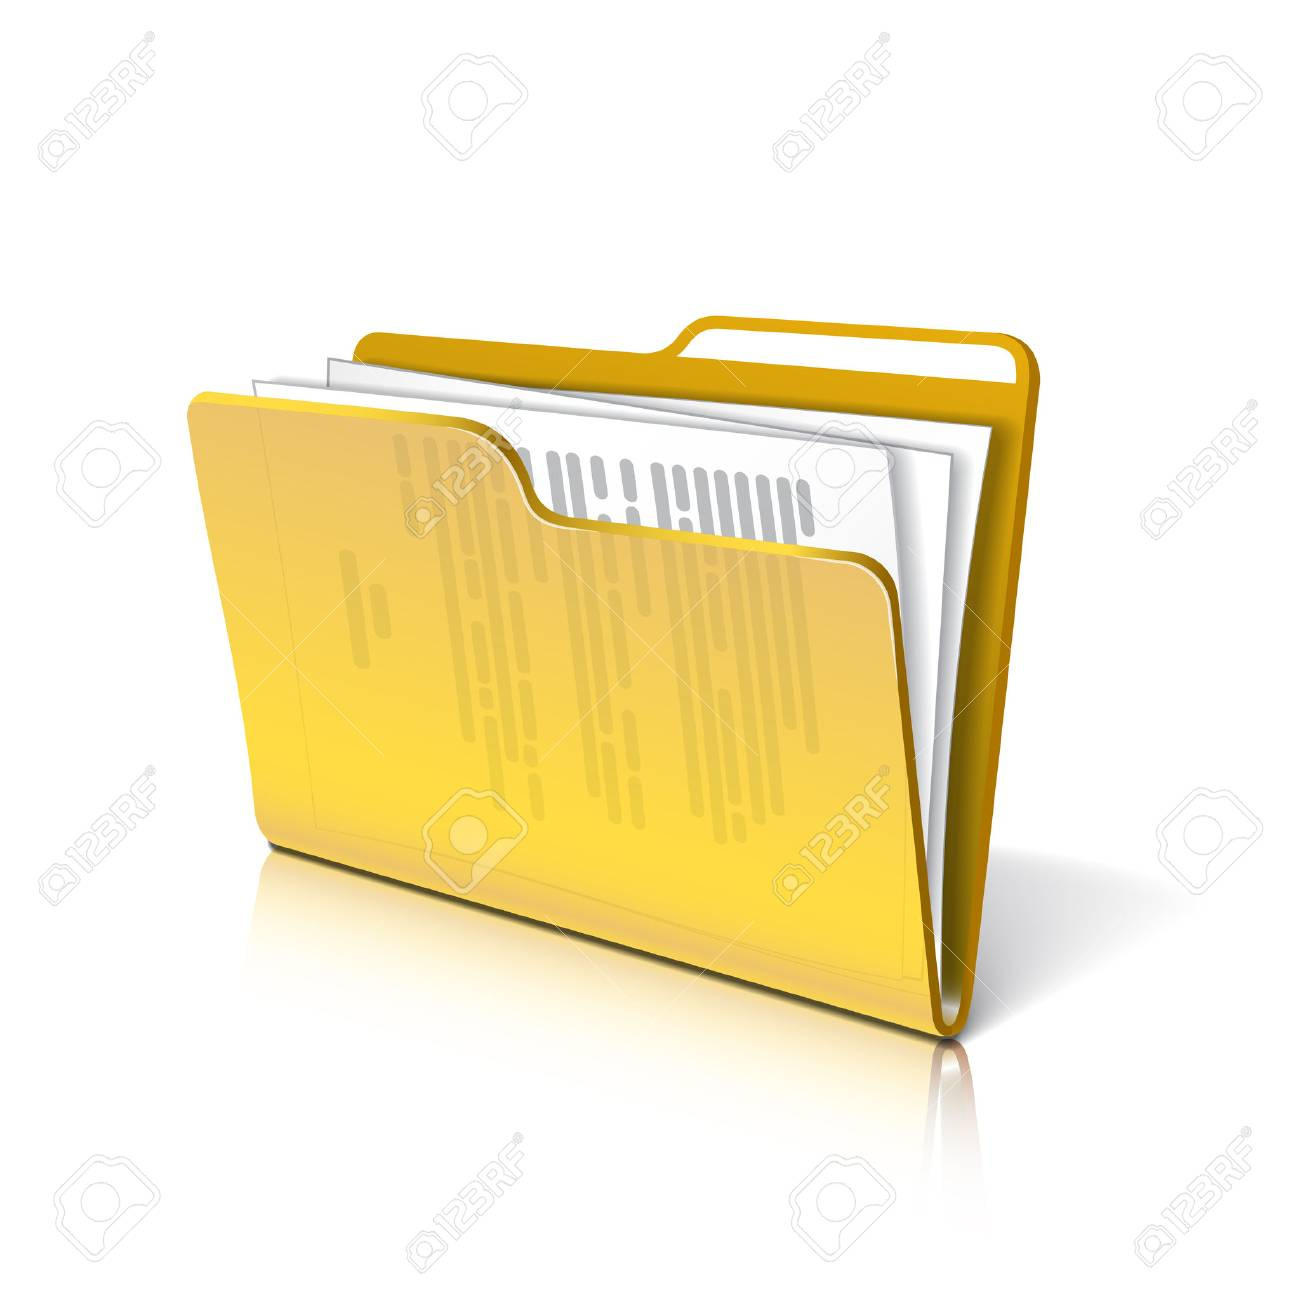 Yellow transparent folder with papers. Document icon. - 43938728